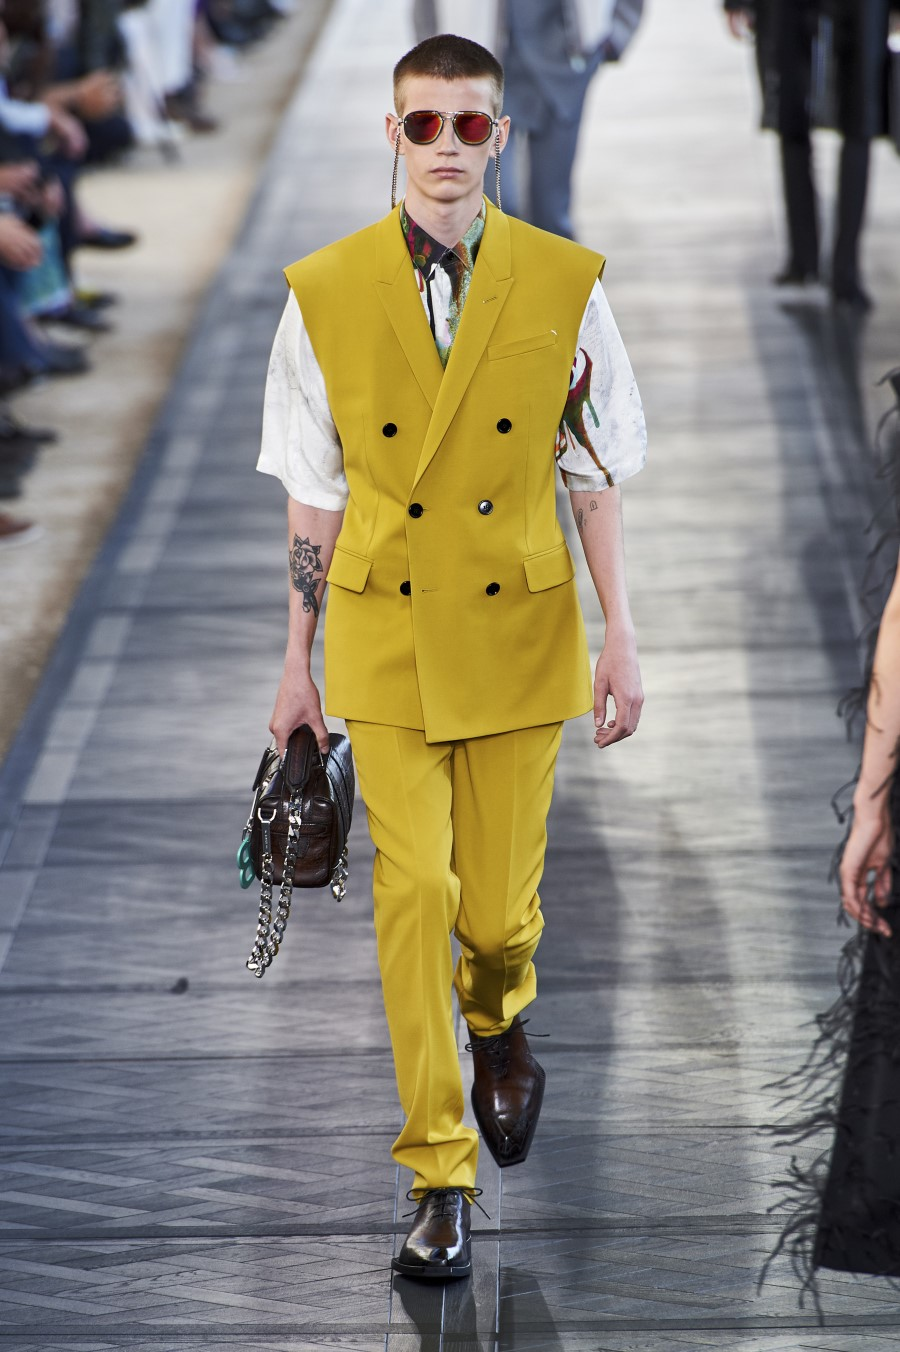 Berluti - Printemps-Été 2020 - Paris Fashion Week